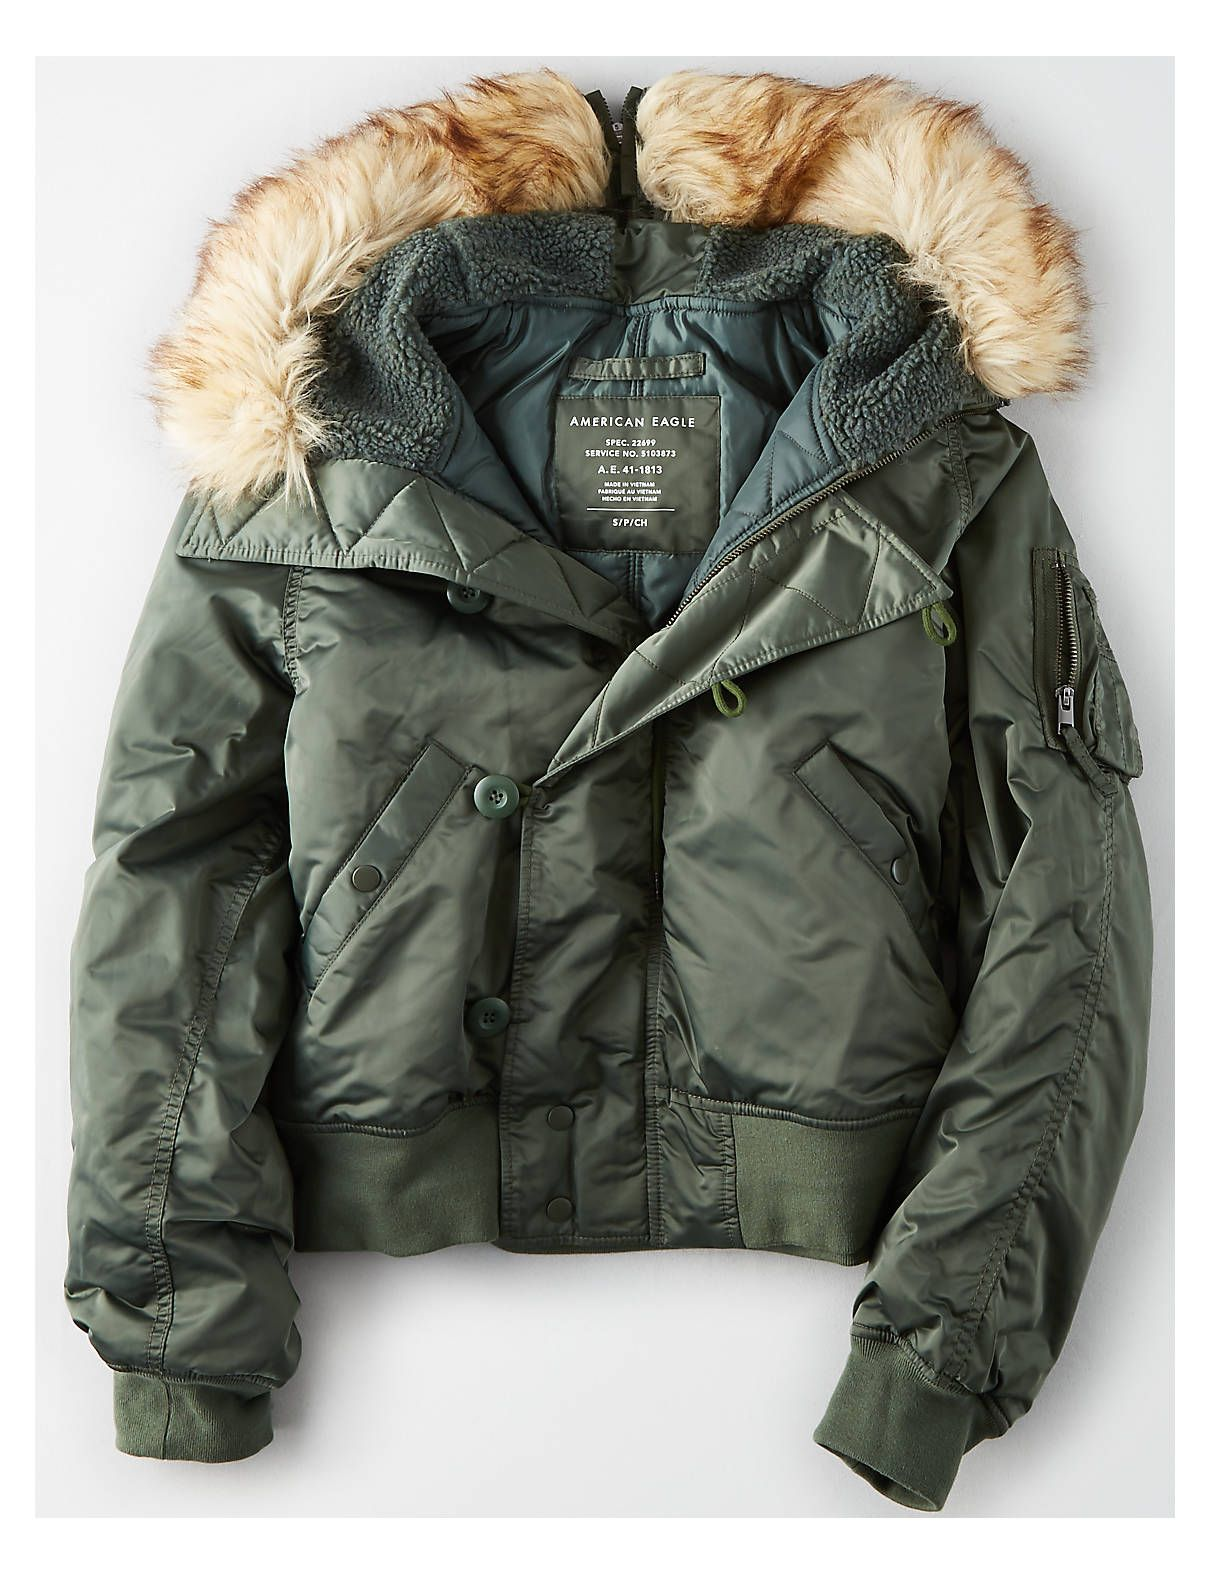 Ae Flight Bomber Jacket Olive American Eagle Outfitters American Eagle Women Clothes For Women Grey Denim Jacket [ 1575 x 1211 Pixel ]